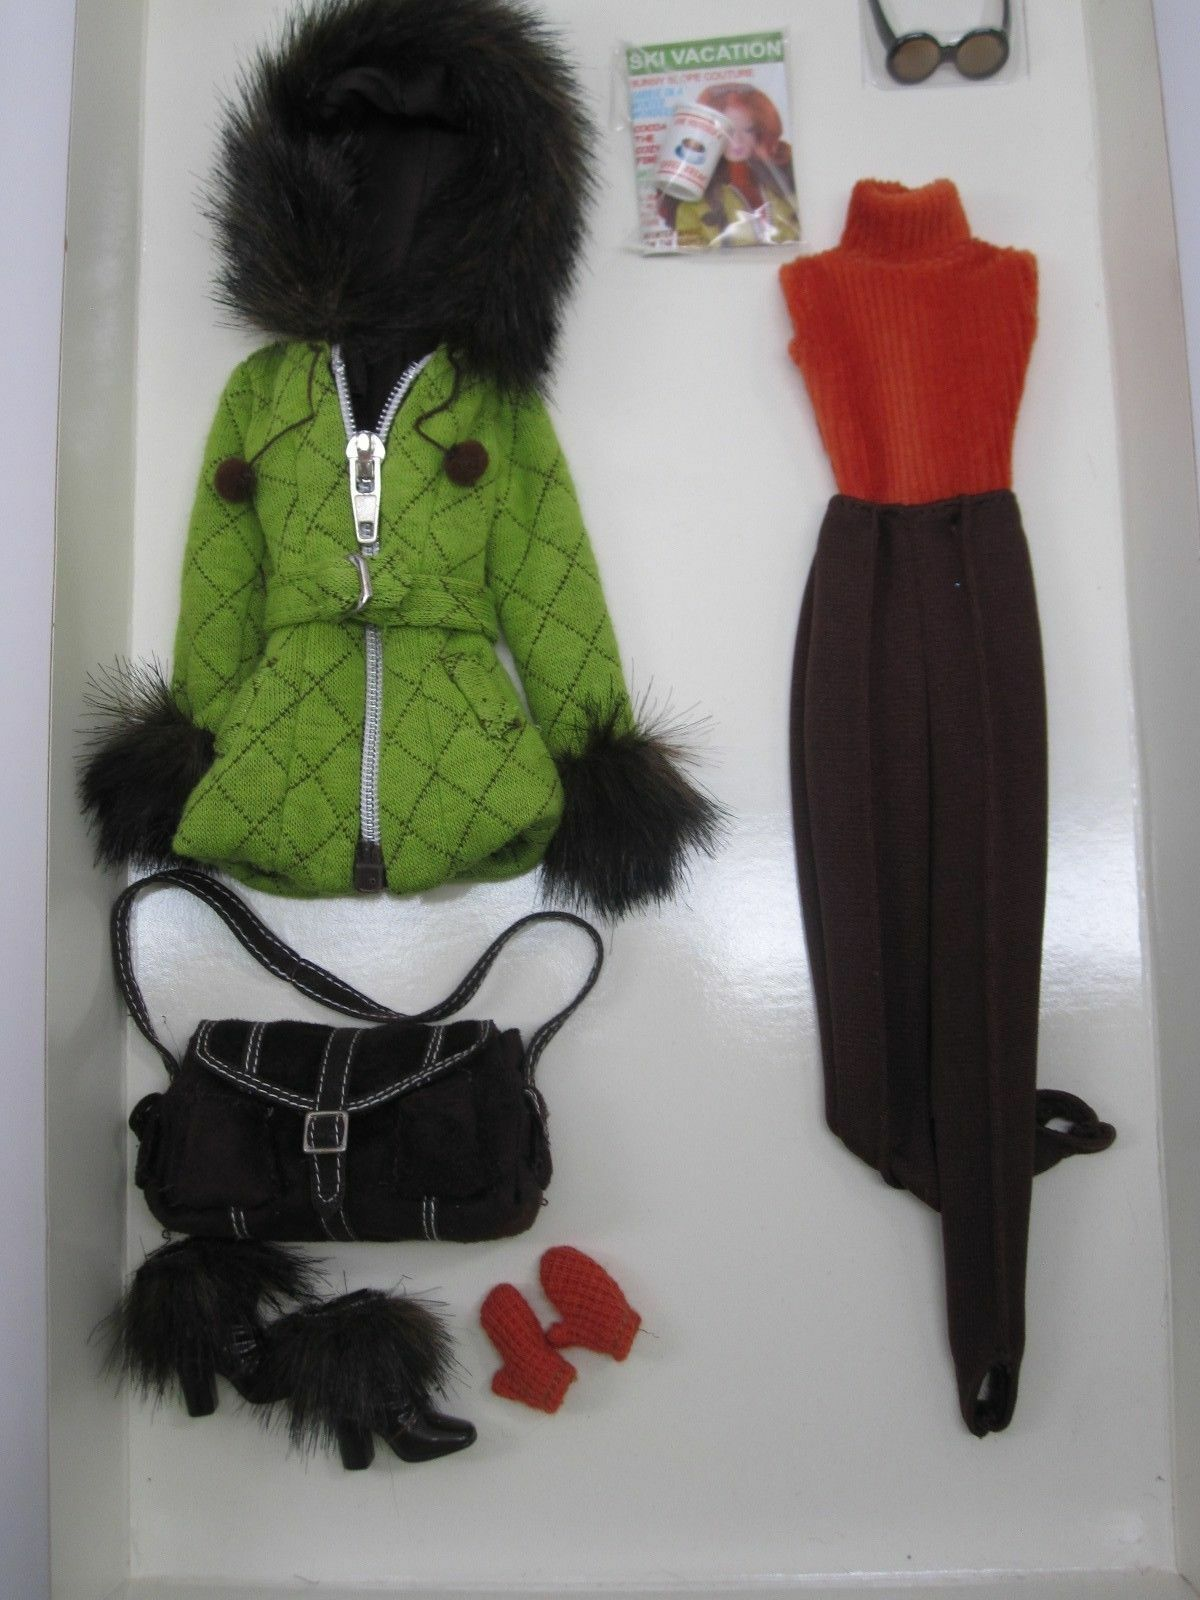 2004 Skiing Vacation Barbie Fashion Fashion Fashion BFMC  Gold Label   Silkstone  G5271 b33a9b